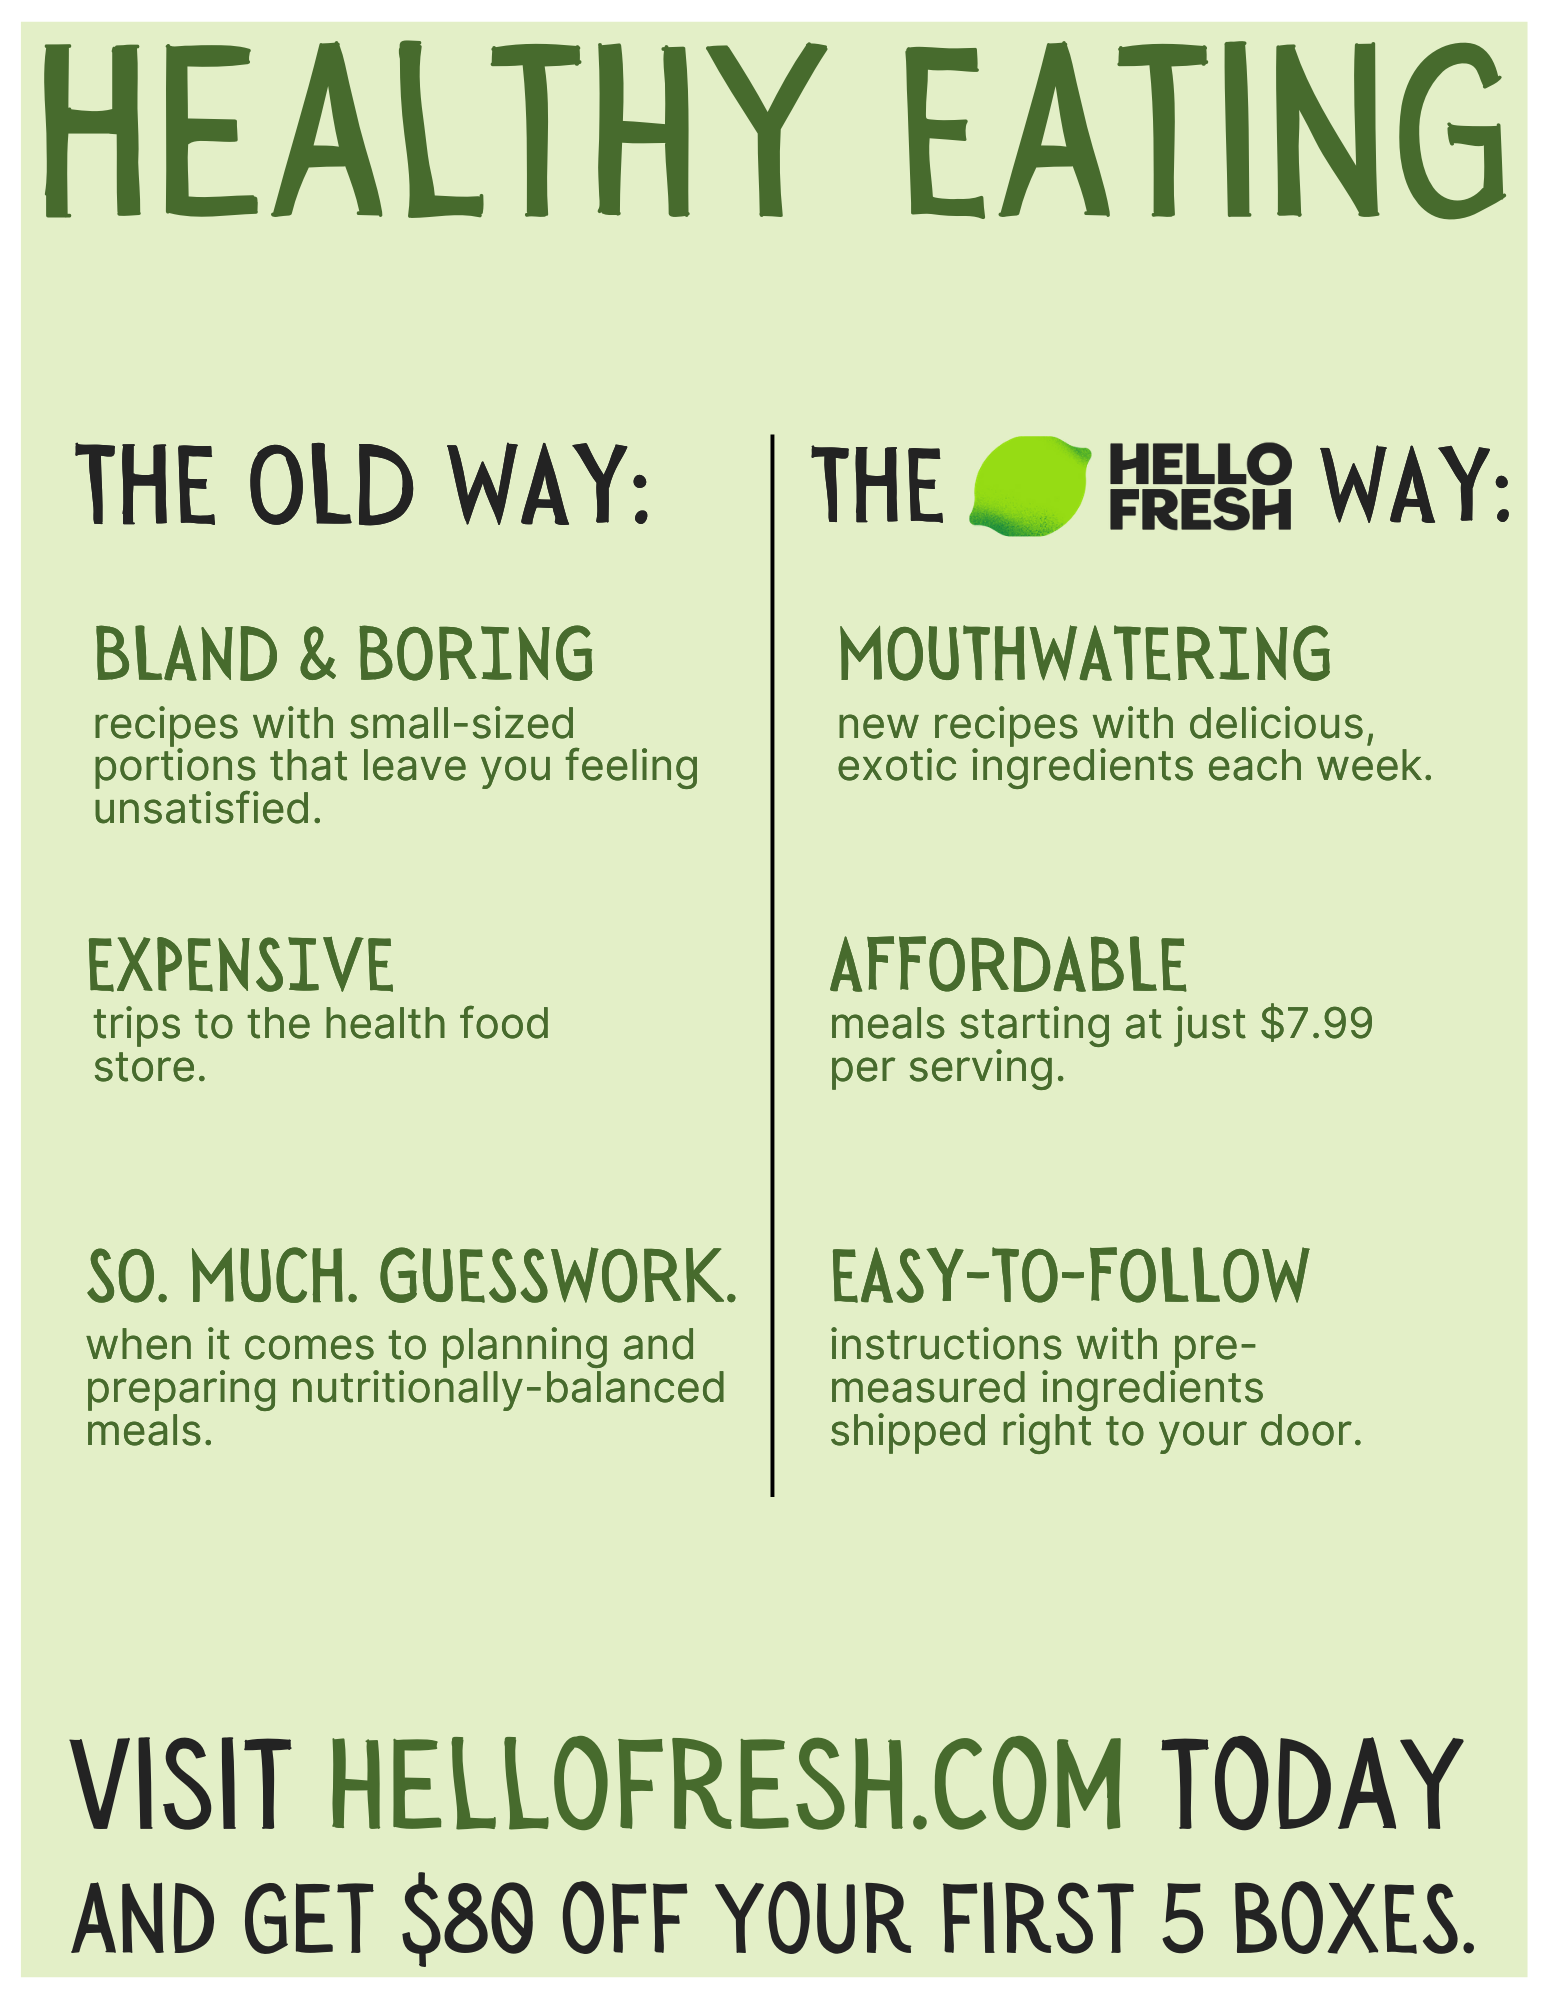 HelloFresh - Print Ad Copy - Healthy Eating